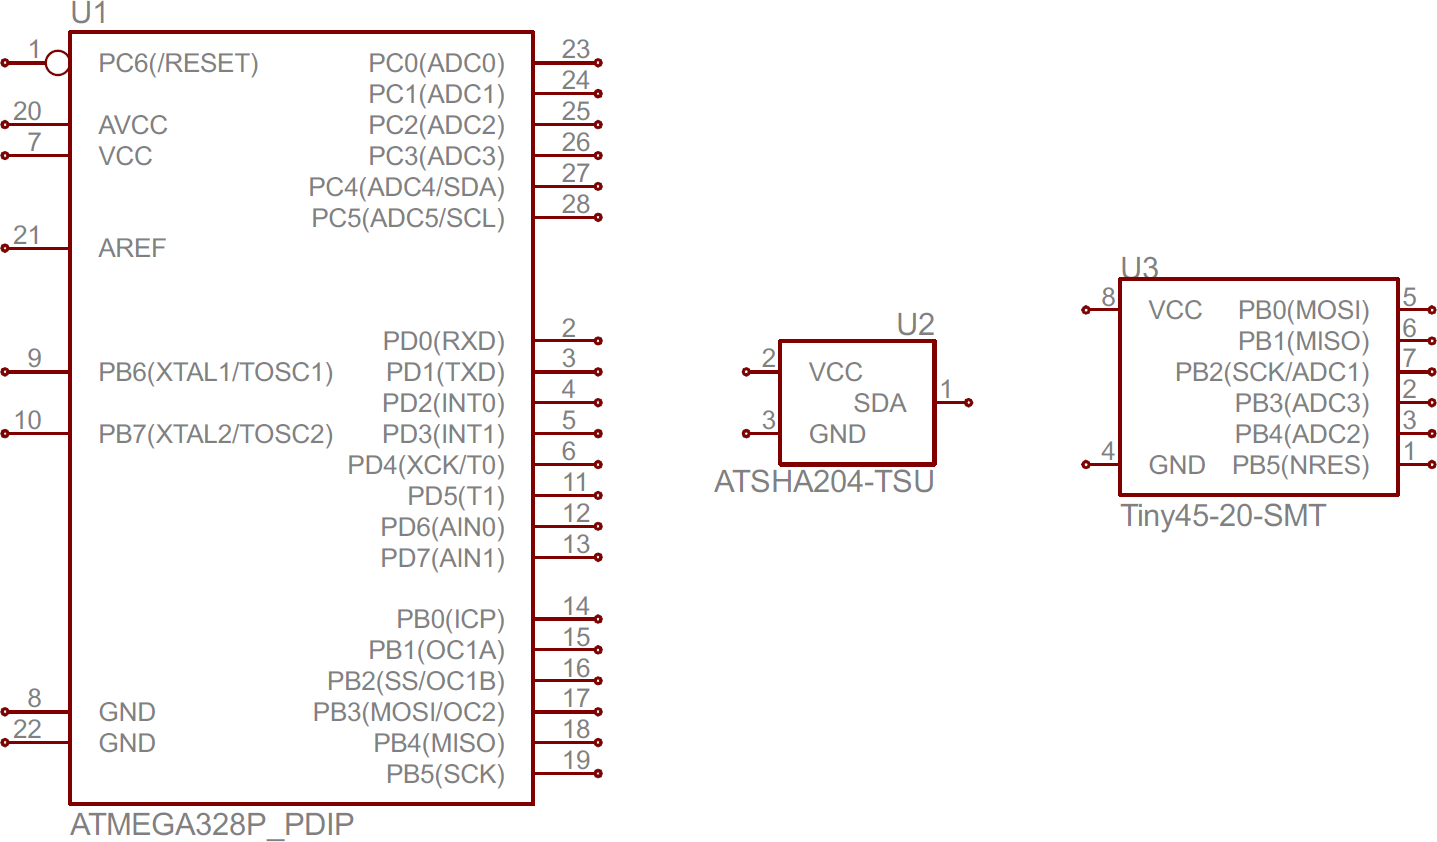 How to read a schematic learnsparkfun atmega328 atsha204 and attiny45 ic symbols schematic sciox Choice Image